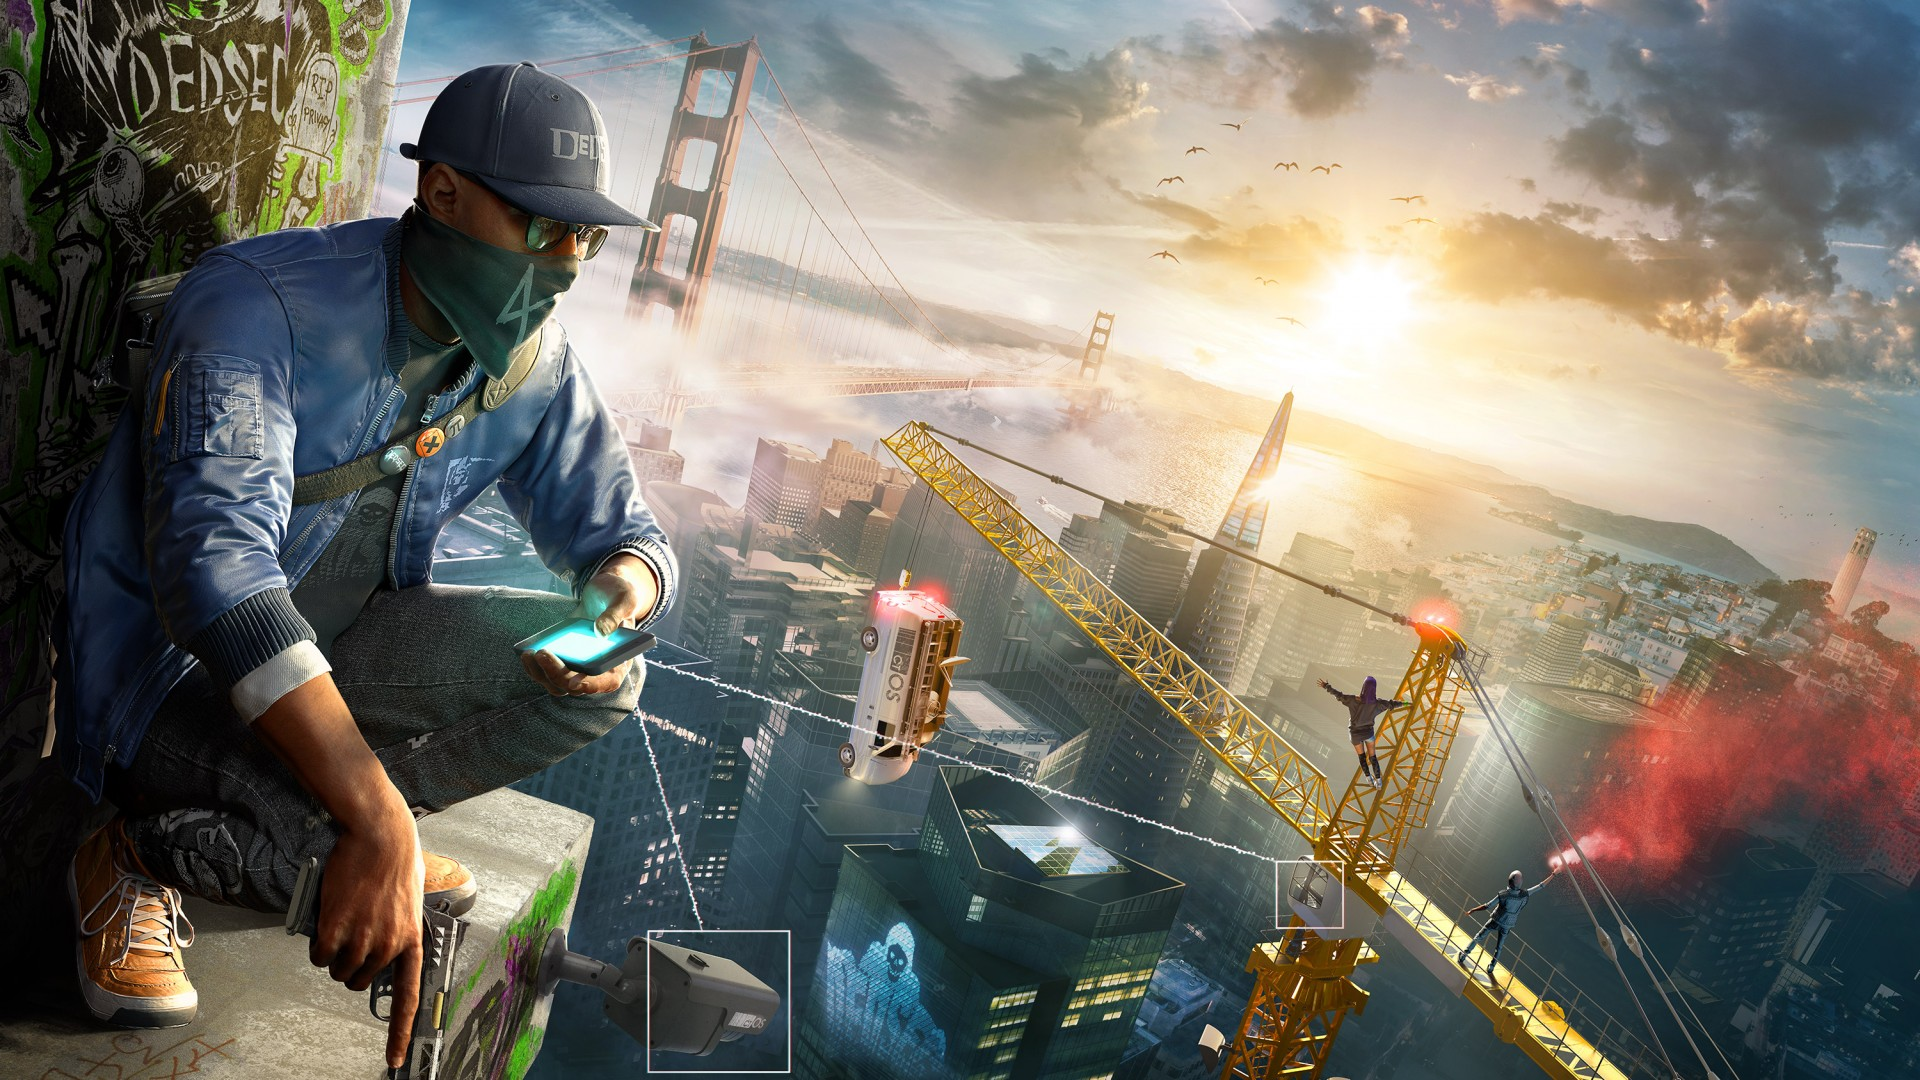 watch_dogs2_gamersinbeta